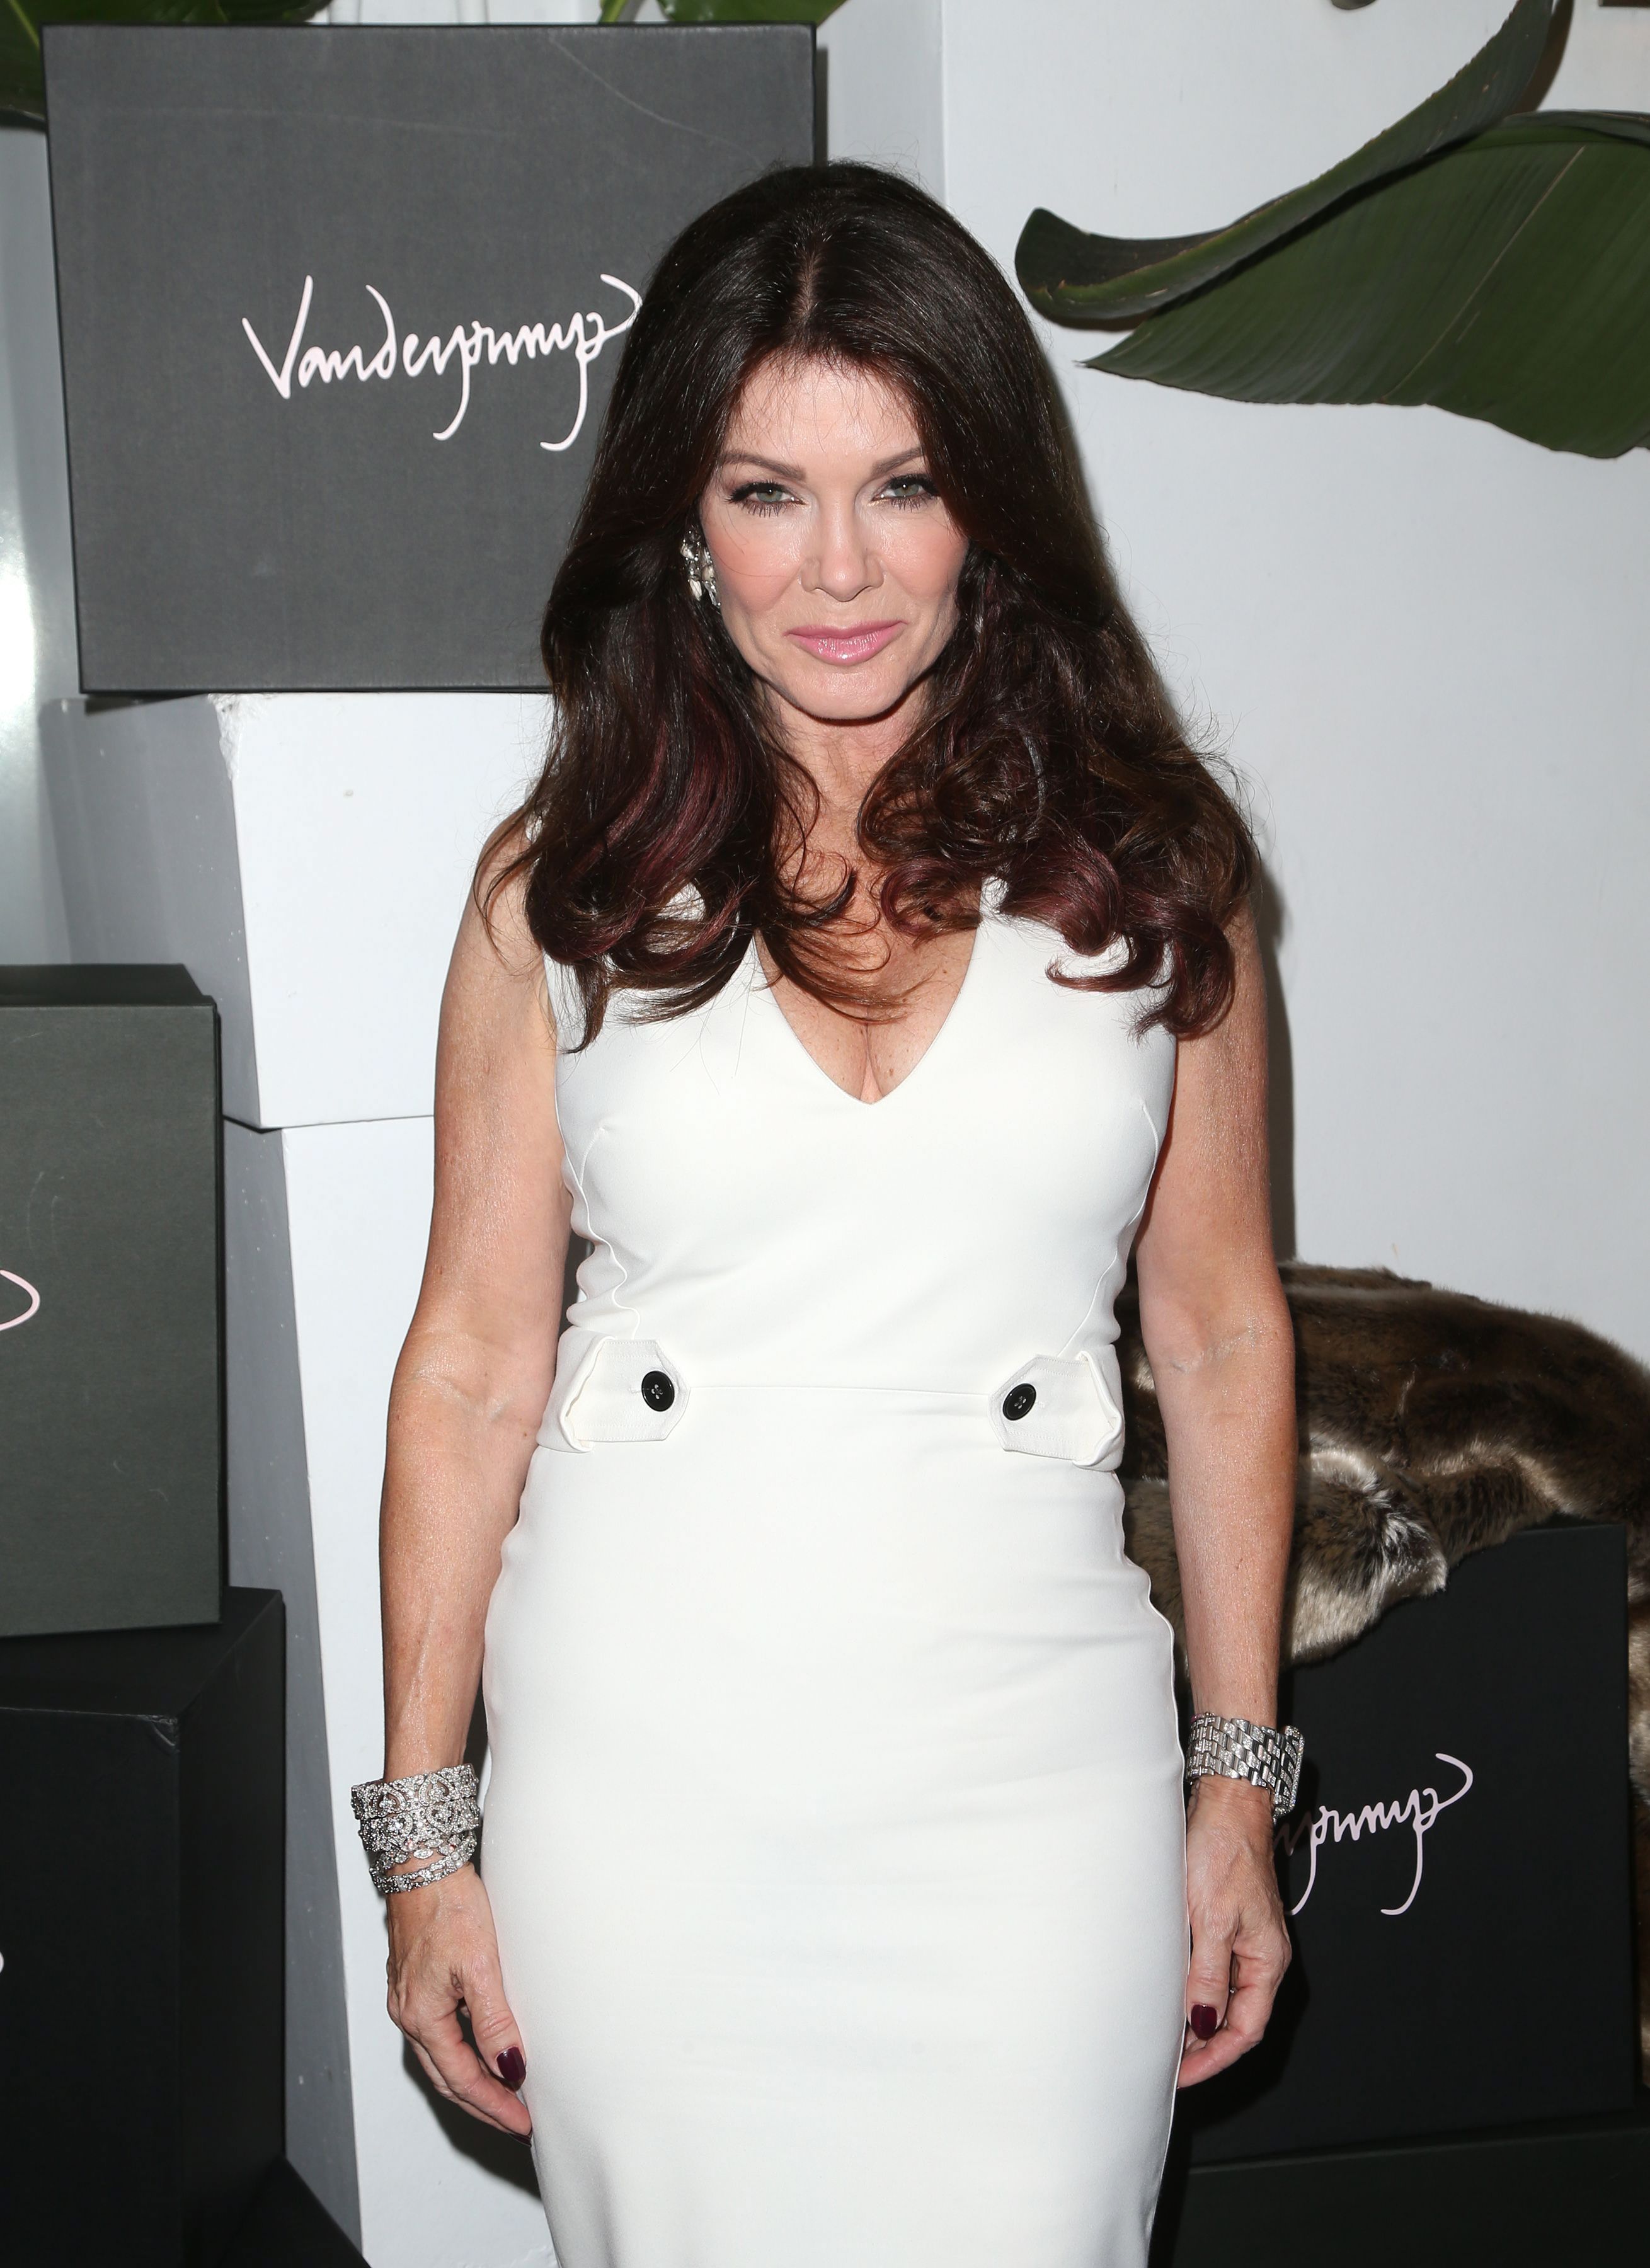 Cast of Real Housewives of Beverly Hills: How Much Are They Worth? - Fame10